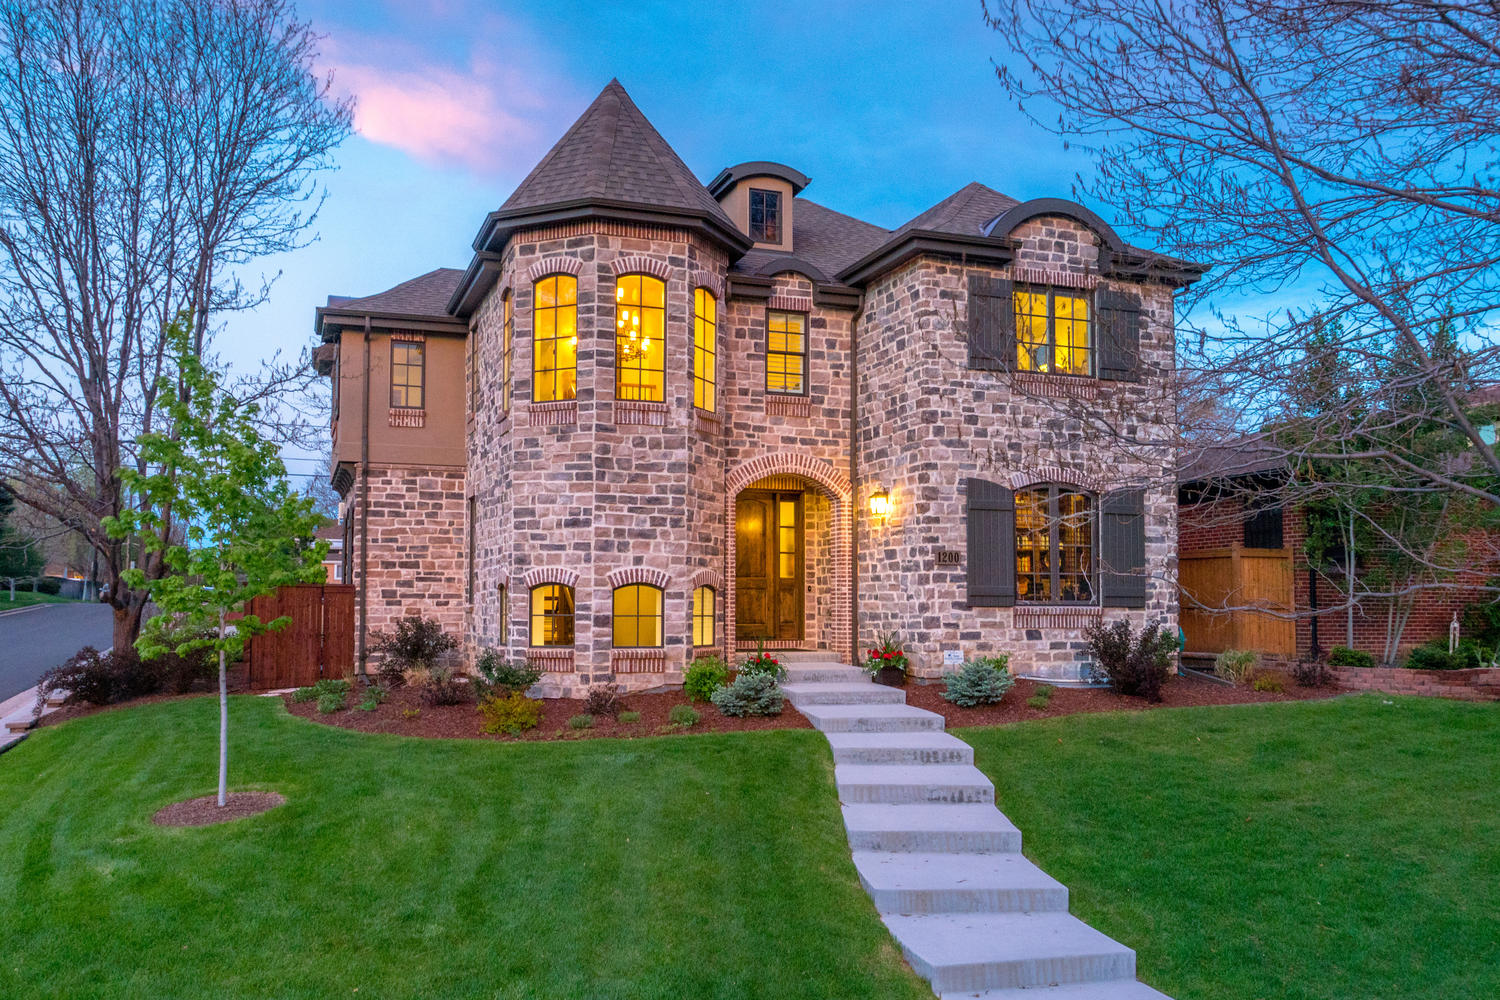 Single Family Home for Sale at Classically-Styled Custom Home on one of Cory-Merrill's Best Blocks 1200 S. Milwaukee Street Denver, Colorado, 80210 United States